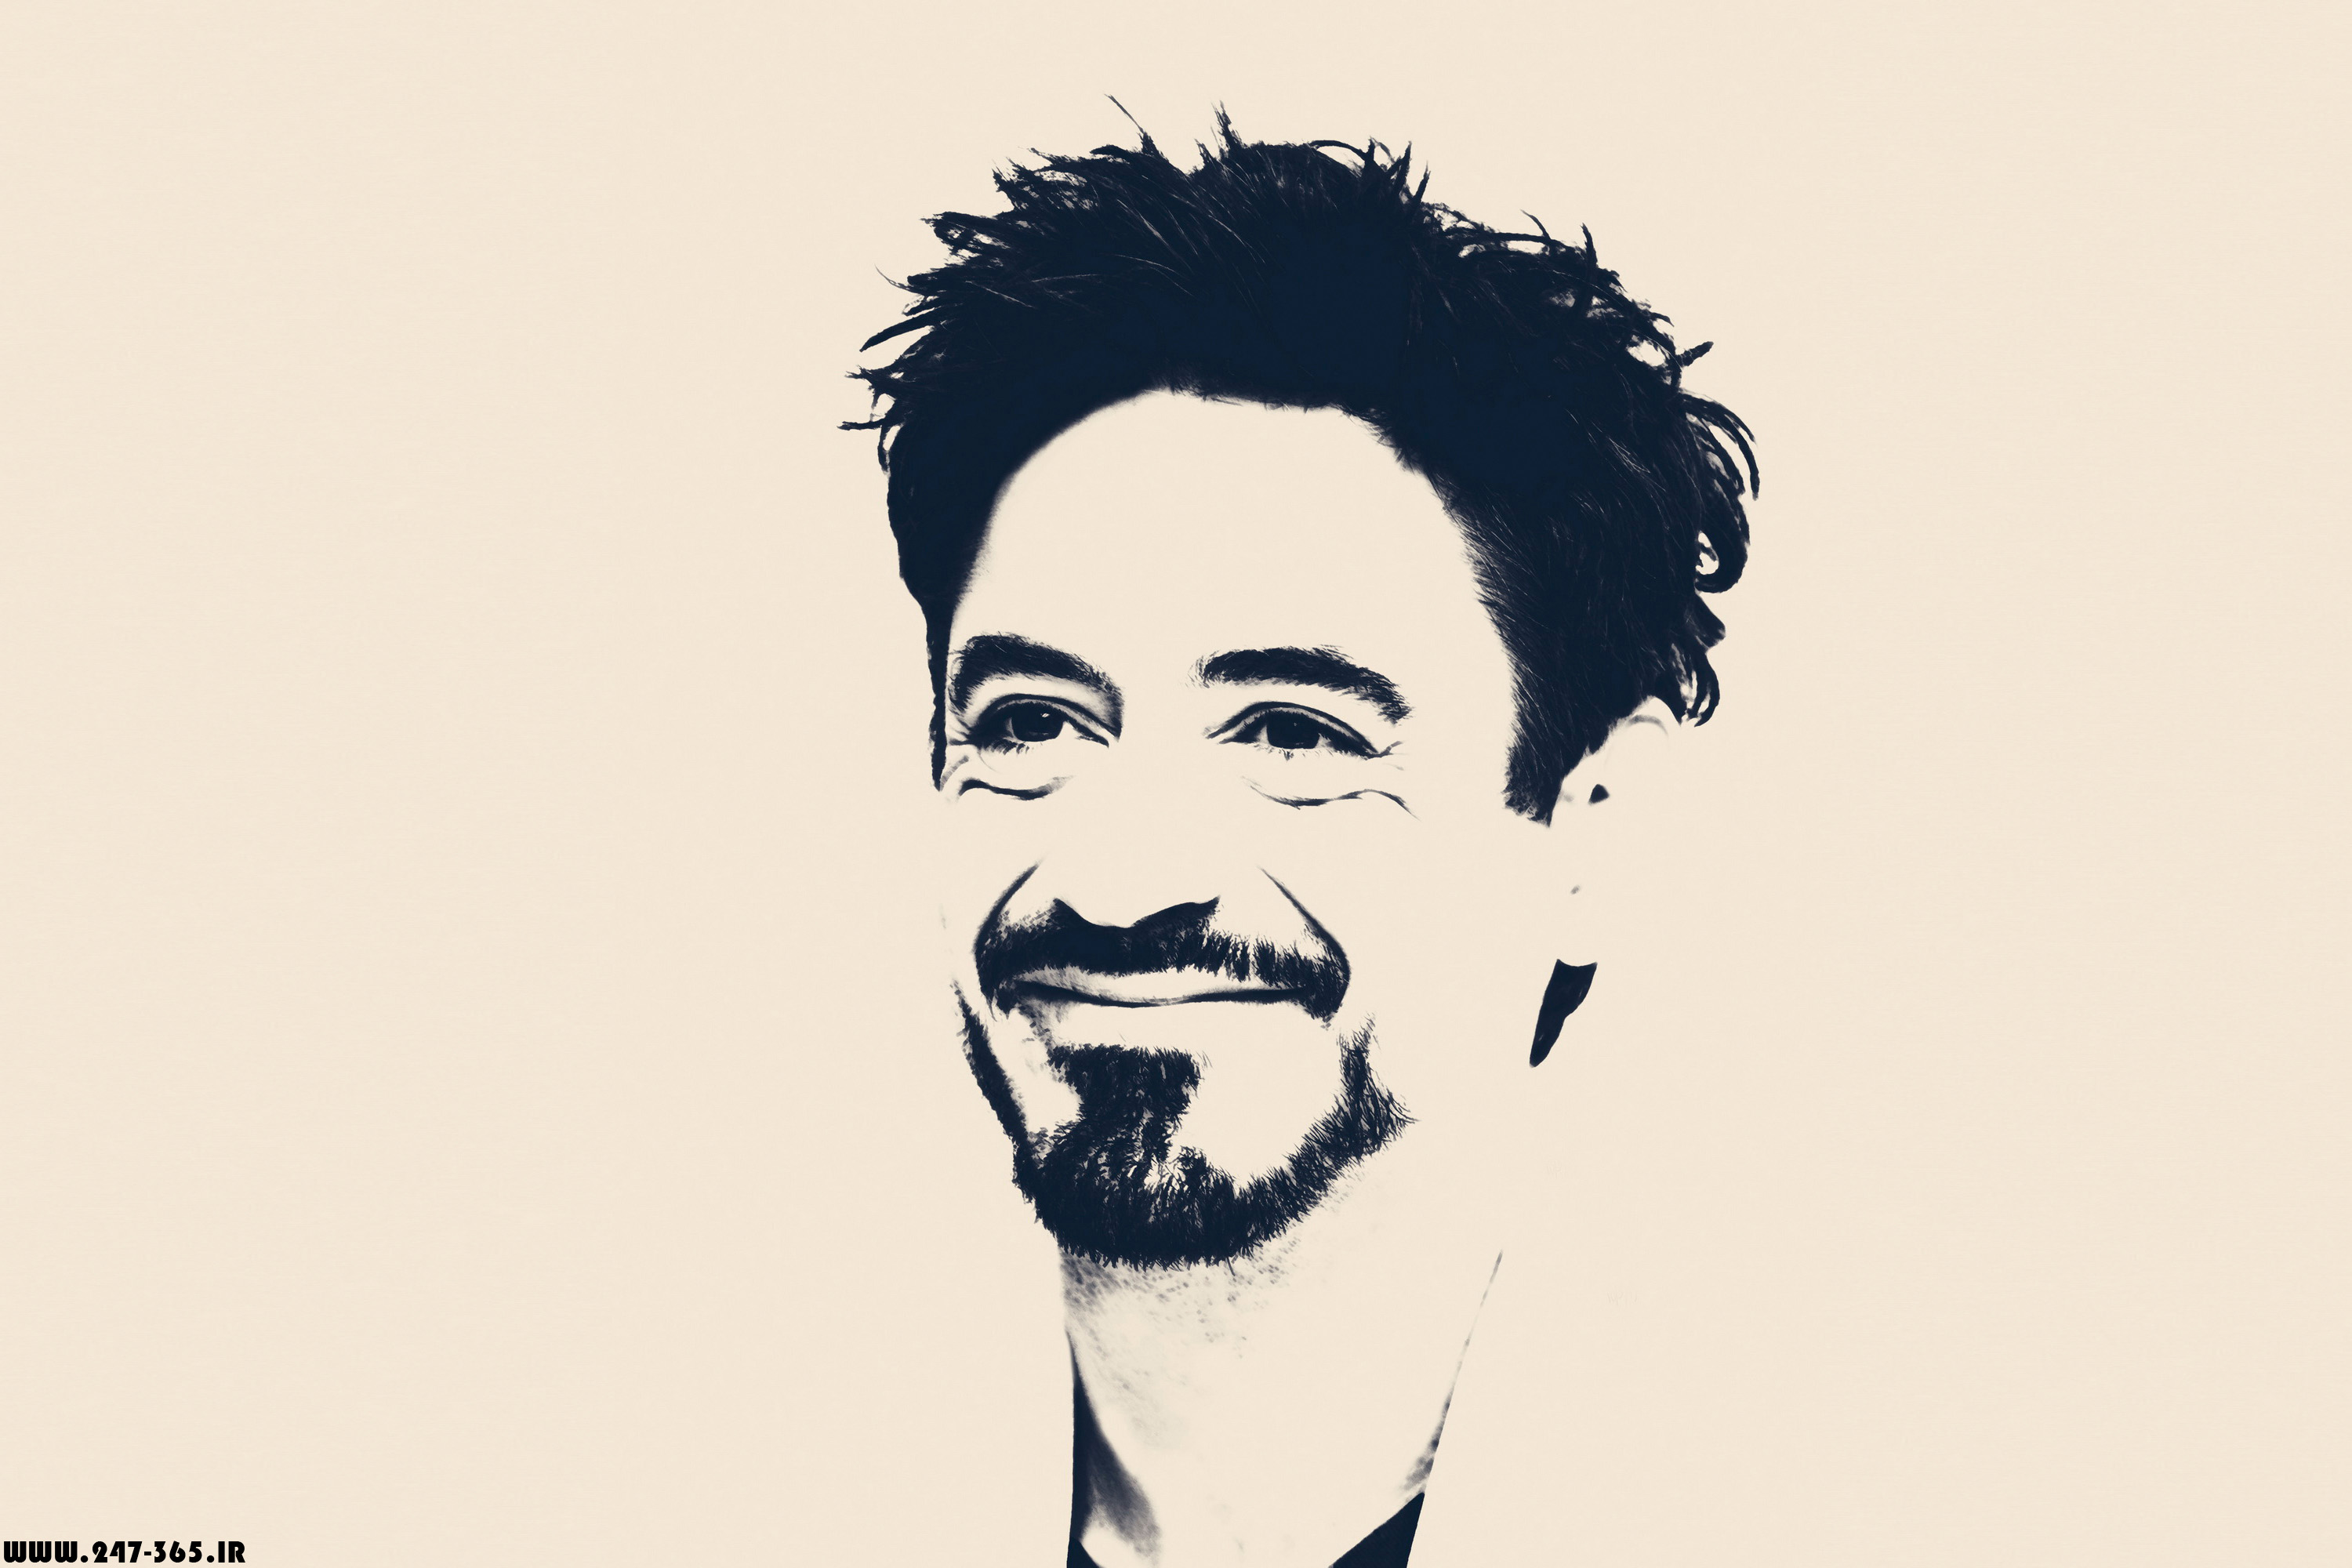 http://dl.247-365.ir/pic/celebrity/robert_downey_jr_2/Robert_Downey_Jr_2_20.jpg